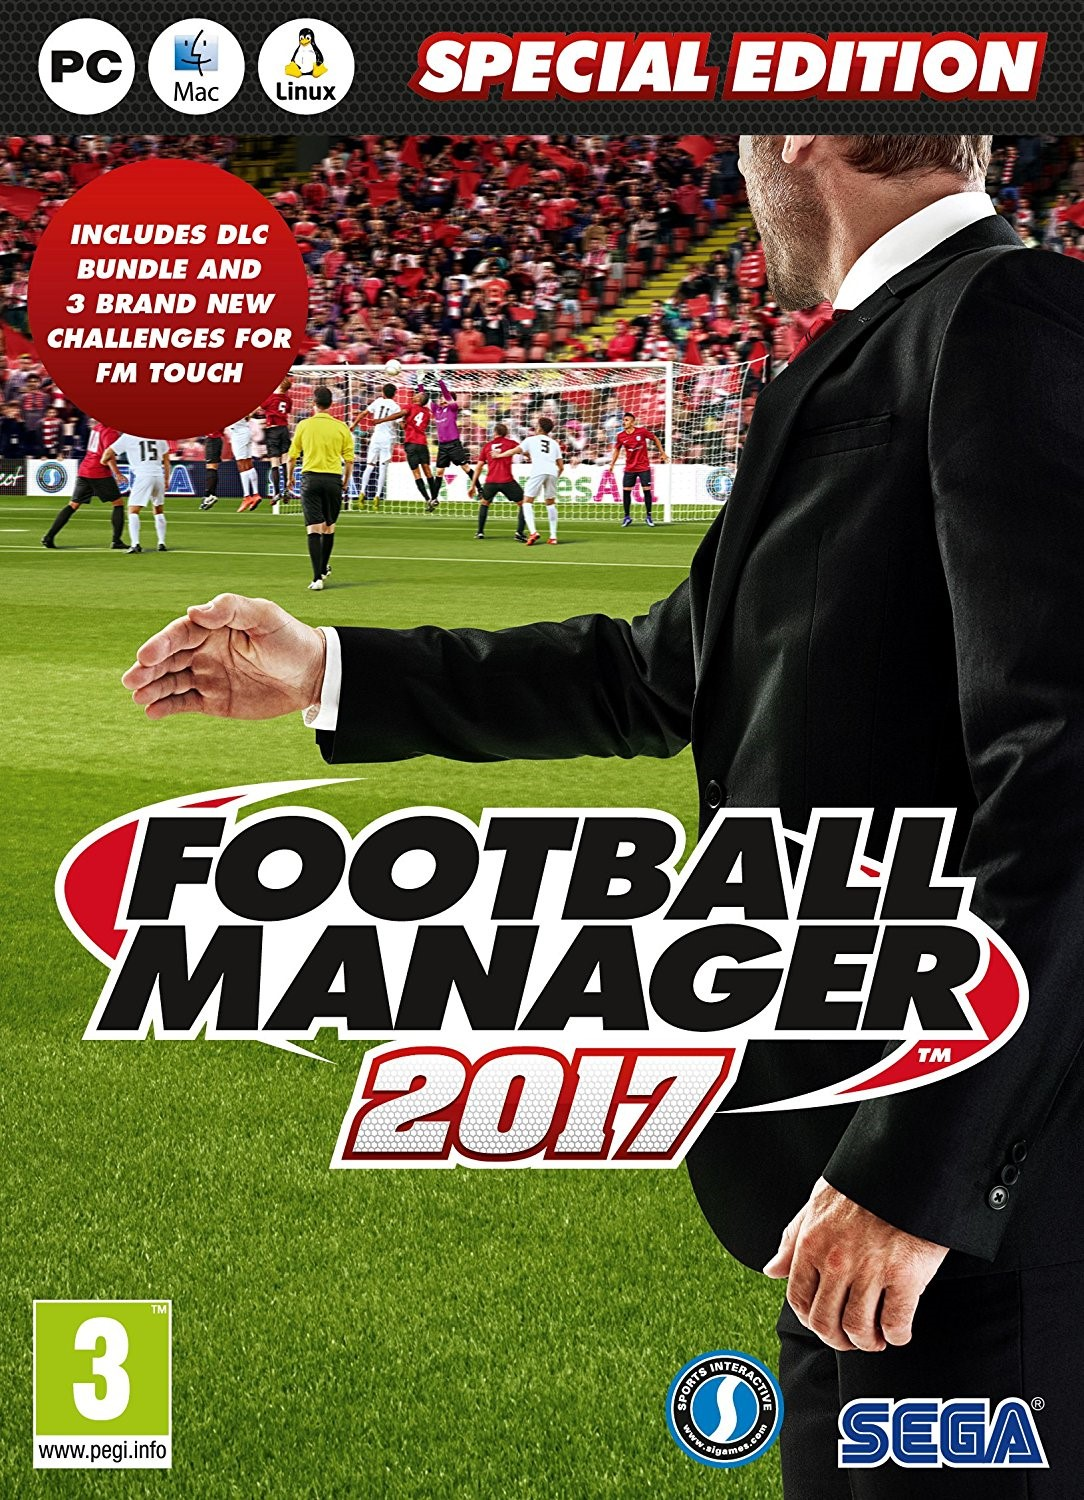 26215 - PC - FOOTBALL MANAGER 2017  - LIMITED EDITION Europe